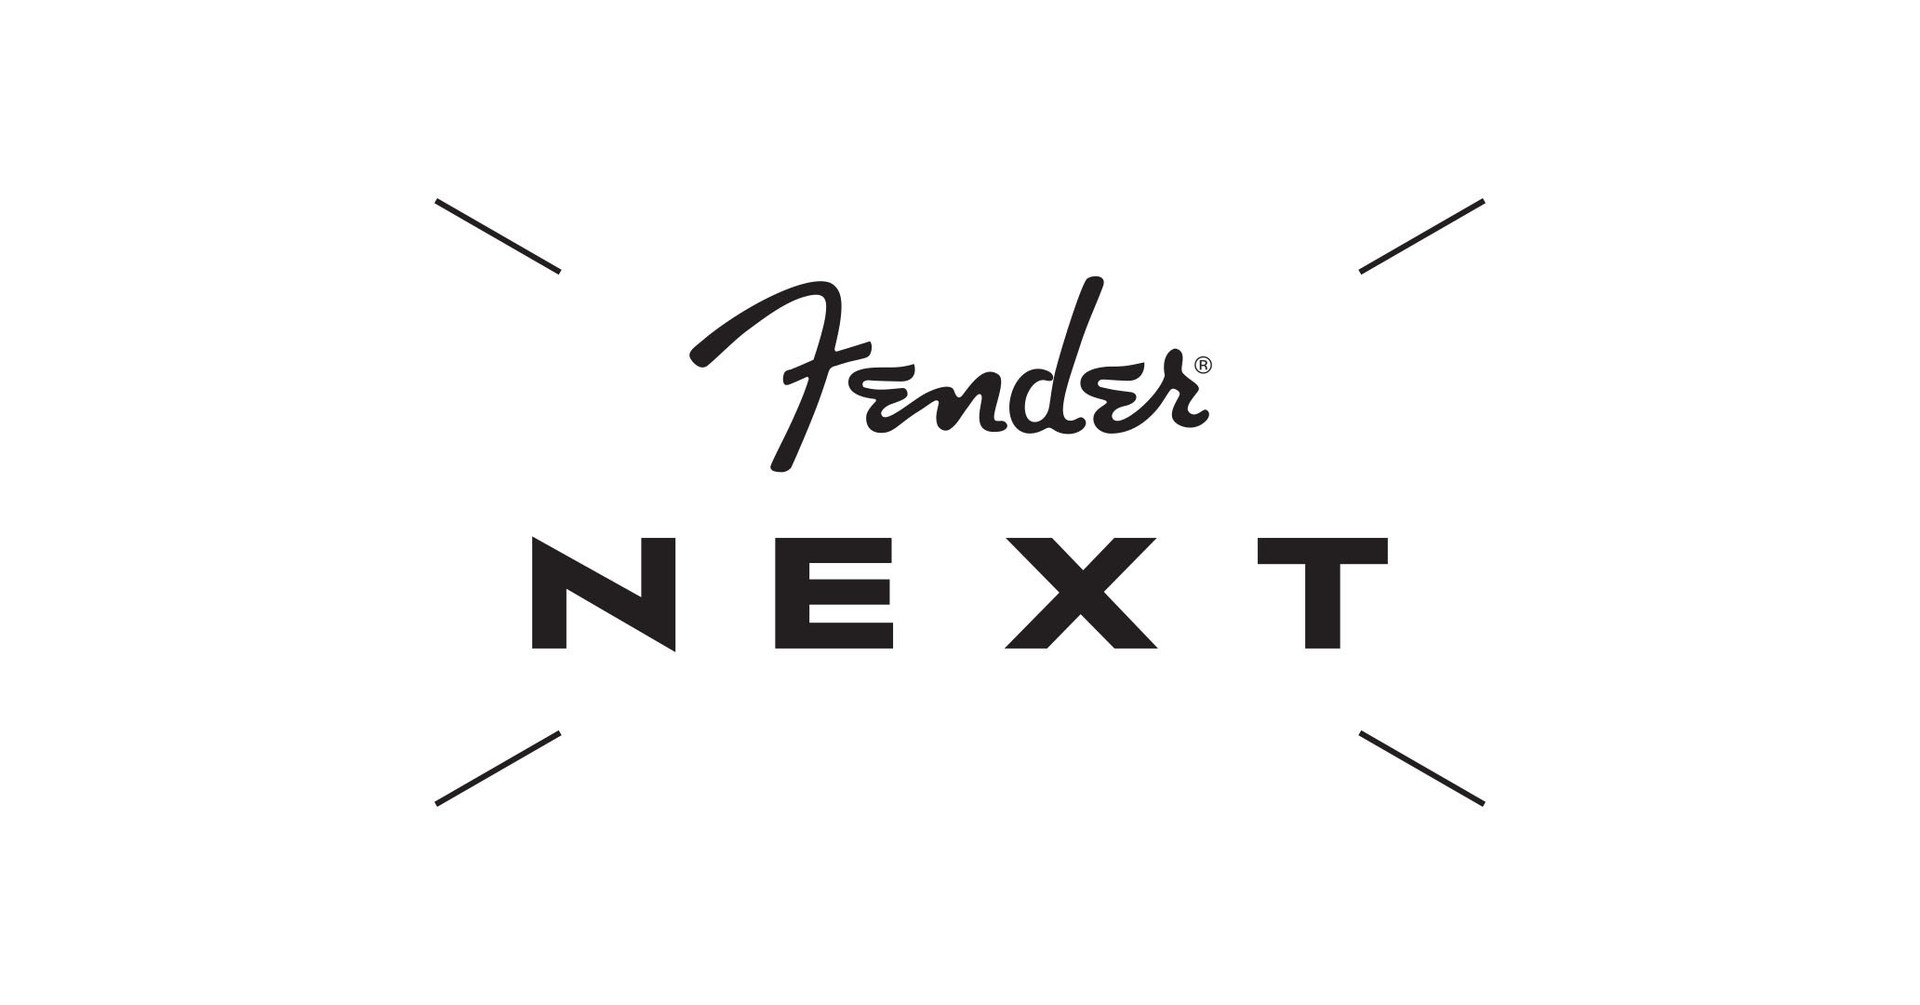 Fender® Launches New Global Program - Fender Next - To Support